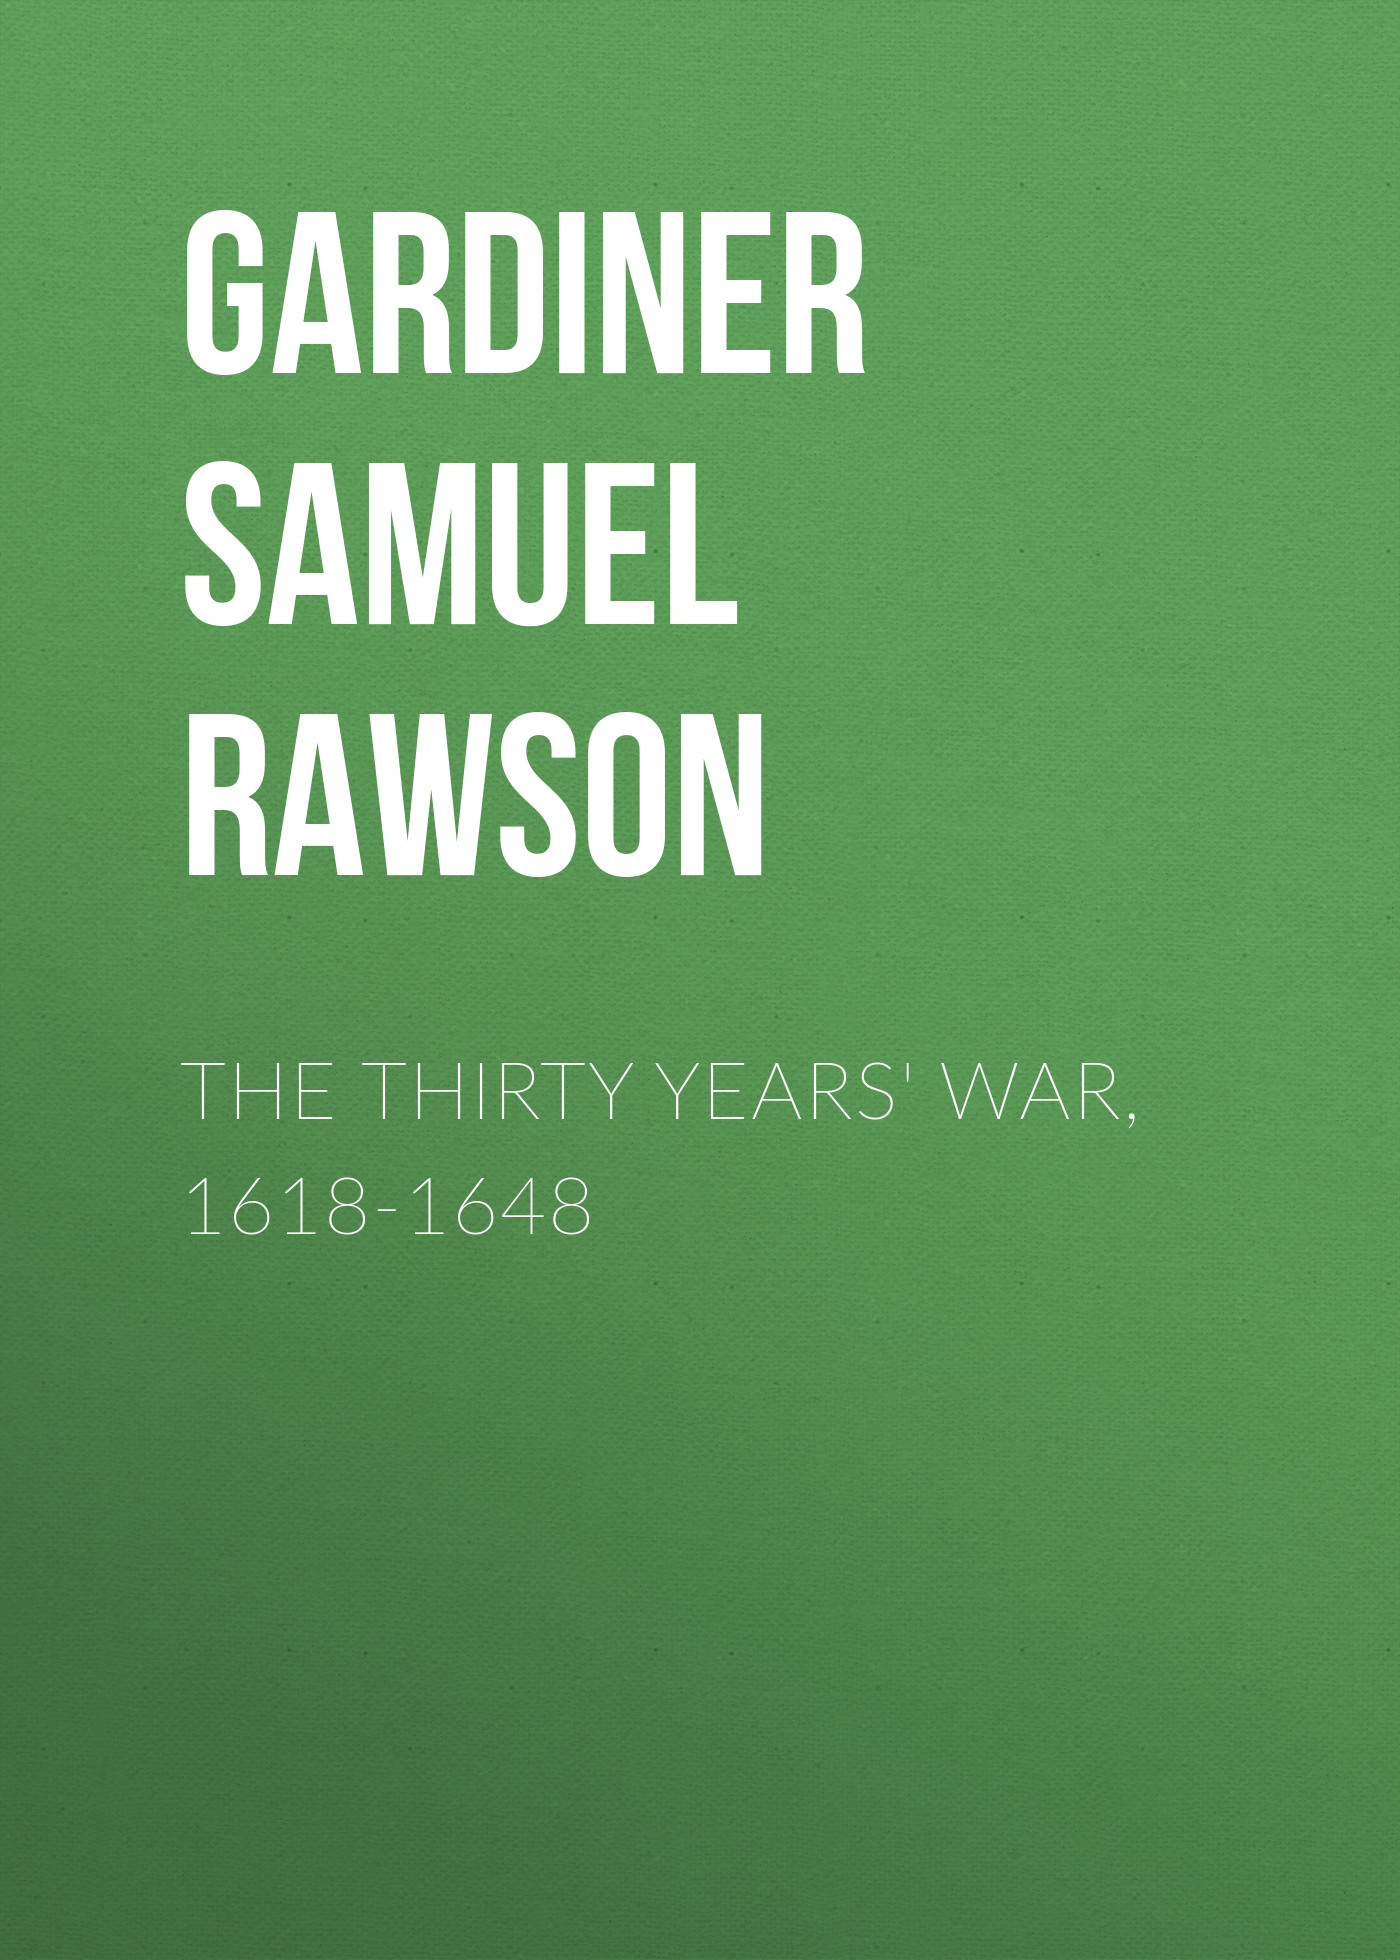 Gardiner Samuel Rawson The Thirty Years' War, 1618-1648 gardiner samuel rawson what gunpowder plot was